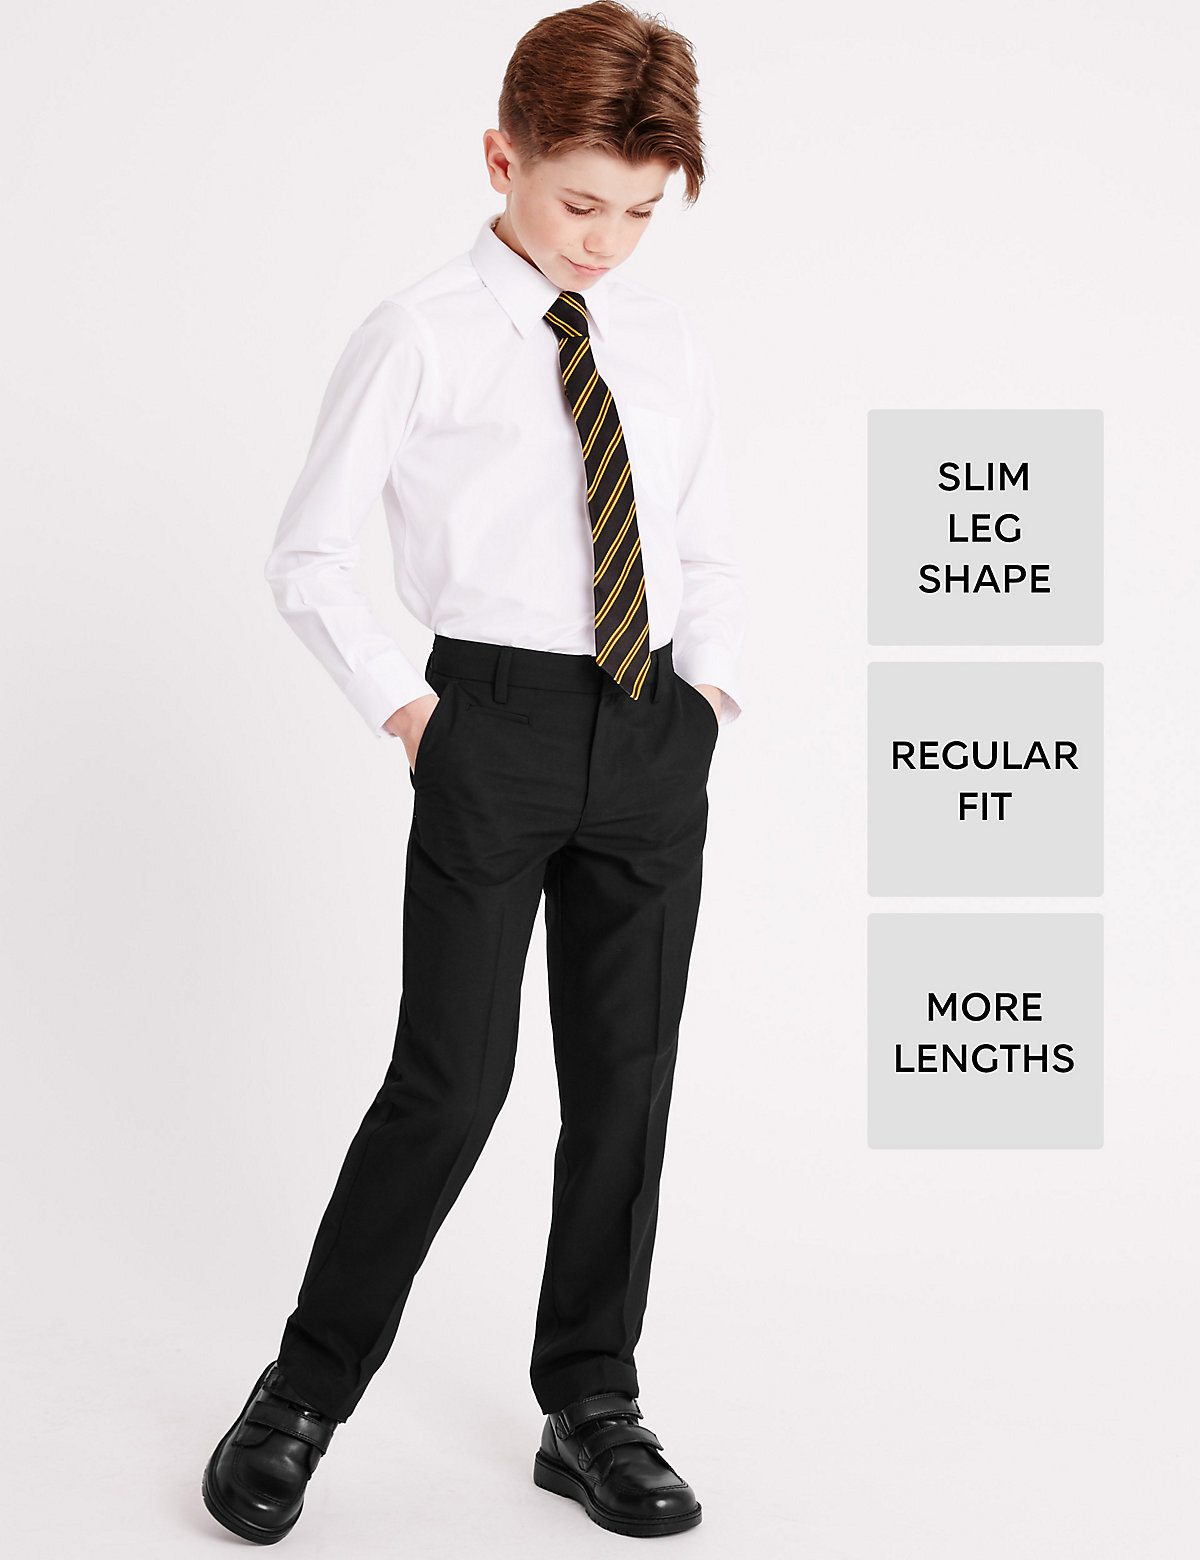 Image of Boys' Stormwear Crease Resistant Longer Length Flat Front Slim Leg Trousers with Supercrease